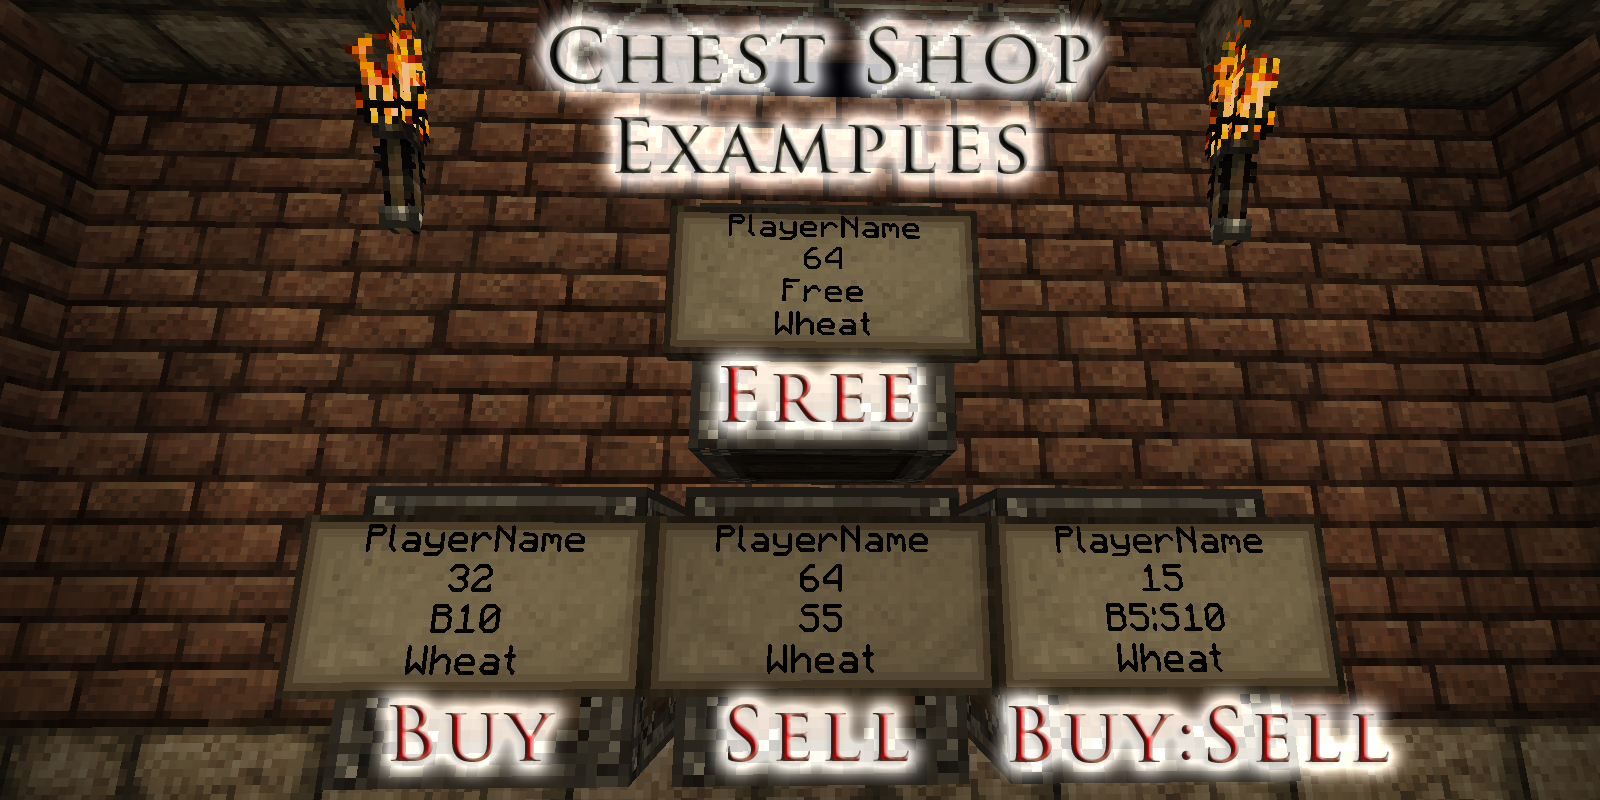 Chest Shop Examples